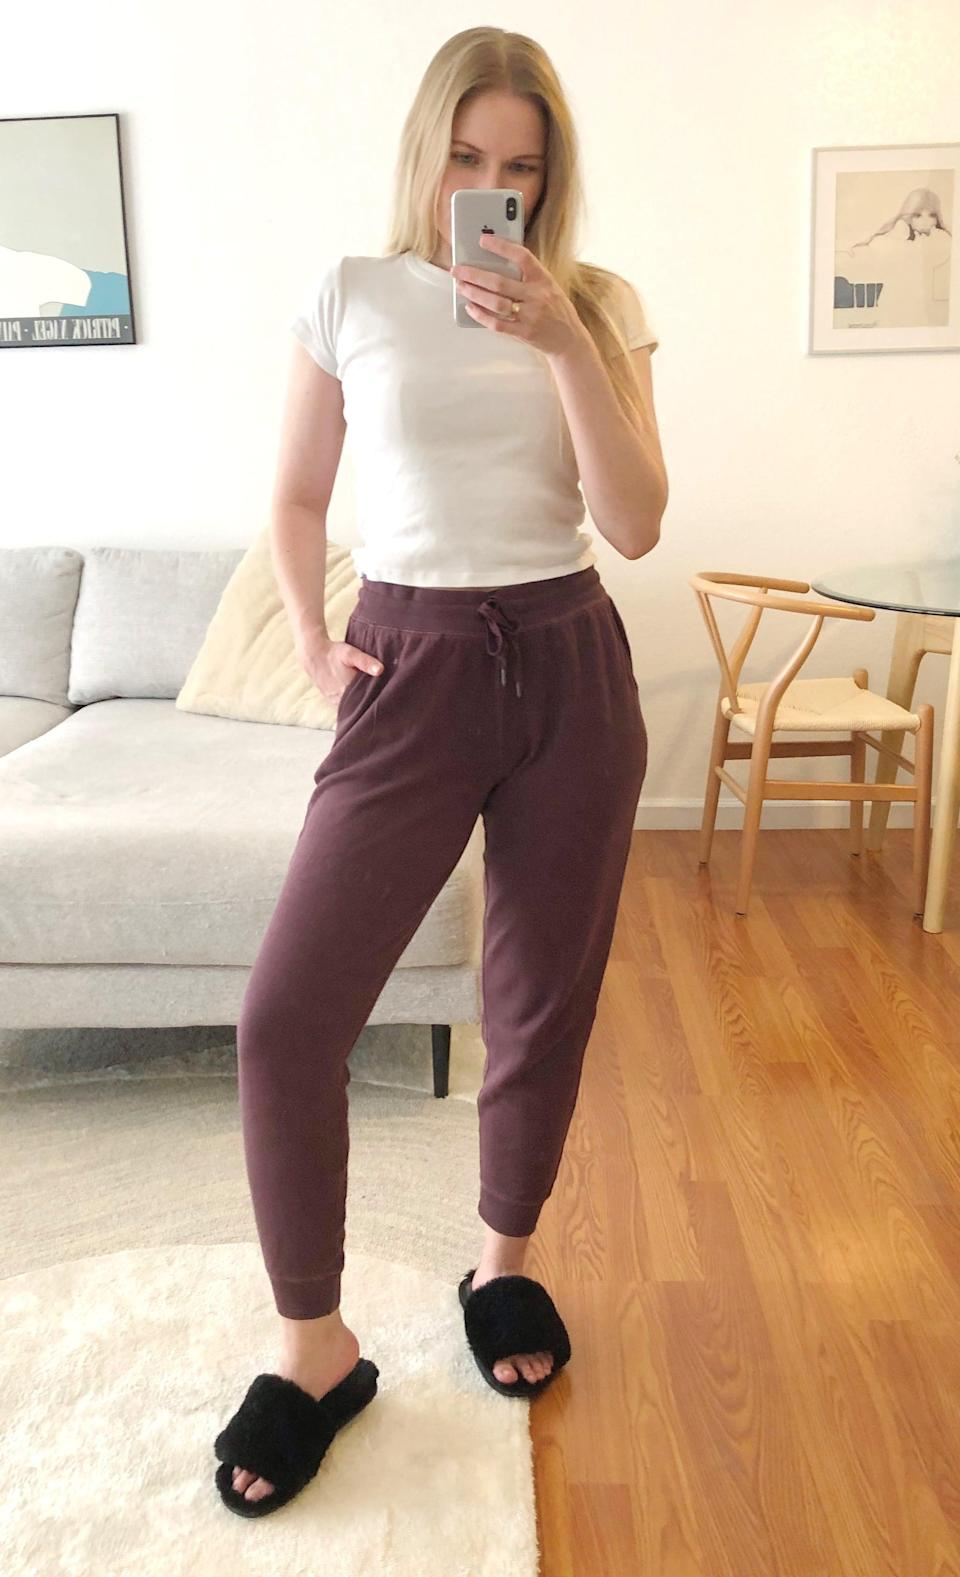 """<p><span>Old Navy Mid-Rise Tapered-Leg Jogger Pants</span> ($28, originally $30)</p> <p>""""My apartment doesn't have air conditioning and can get really hot in the afternoon, but I like staying cozy in my sweats. While all my other options are too fluffy and hot, these ones are just right. The next best thing about them is that they're actually stylish and presentable to leave the house in. If I have to run an errand to grab something at the store, they actually look cute with <a href=""""https://www.popsugar.com/fashion/Best-Women-Sneakers-44311634"""" class=""""link rapid-noclick-resp"""" rel=""""nofollow noopener"""" target=""""_blank"""" data-ylk=""""slk:some sneakers"""">some sneakers</a> and a denim jacket. I have them in a cute maroon shade, but they come in over 10 color choices and fun patterns."""" - Krista Jones, associate editor, Shop</p>"""